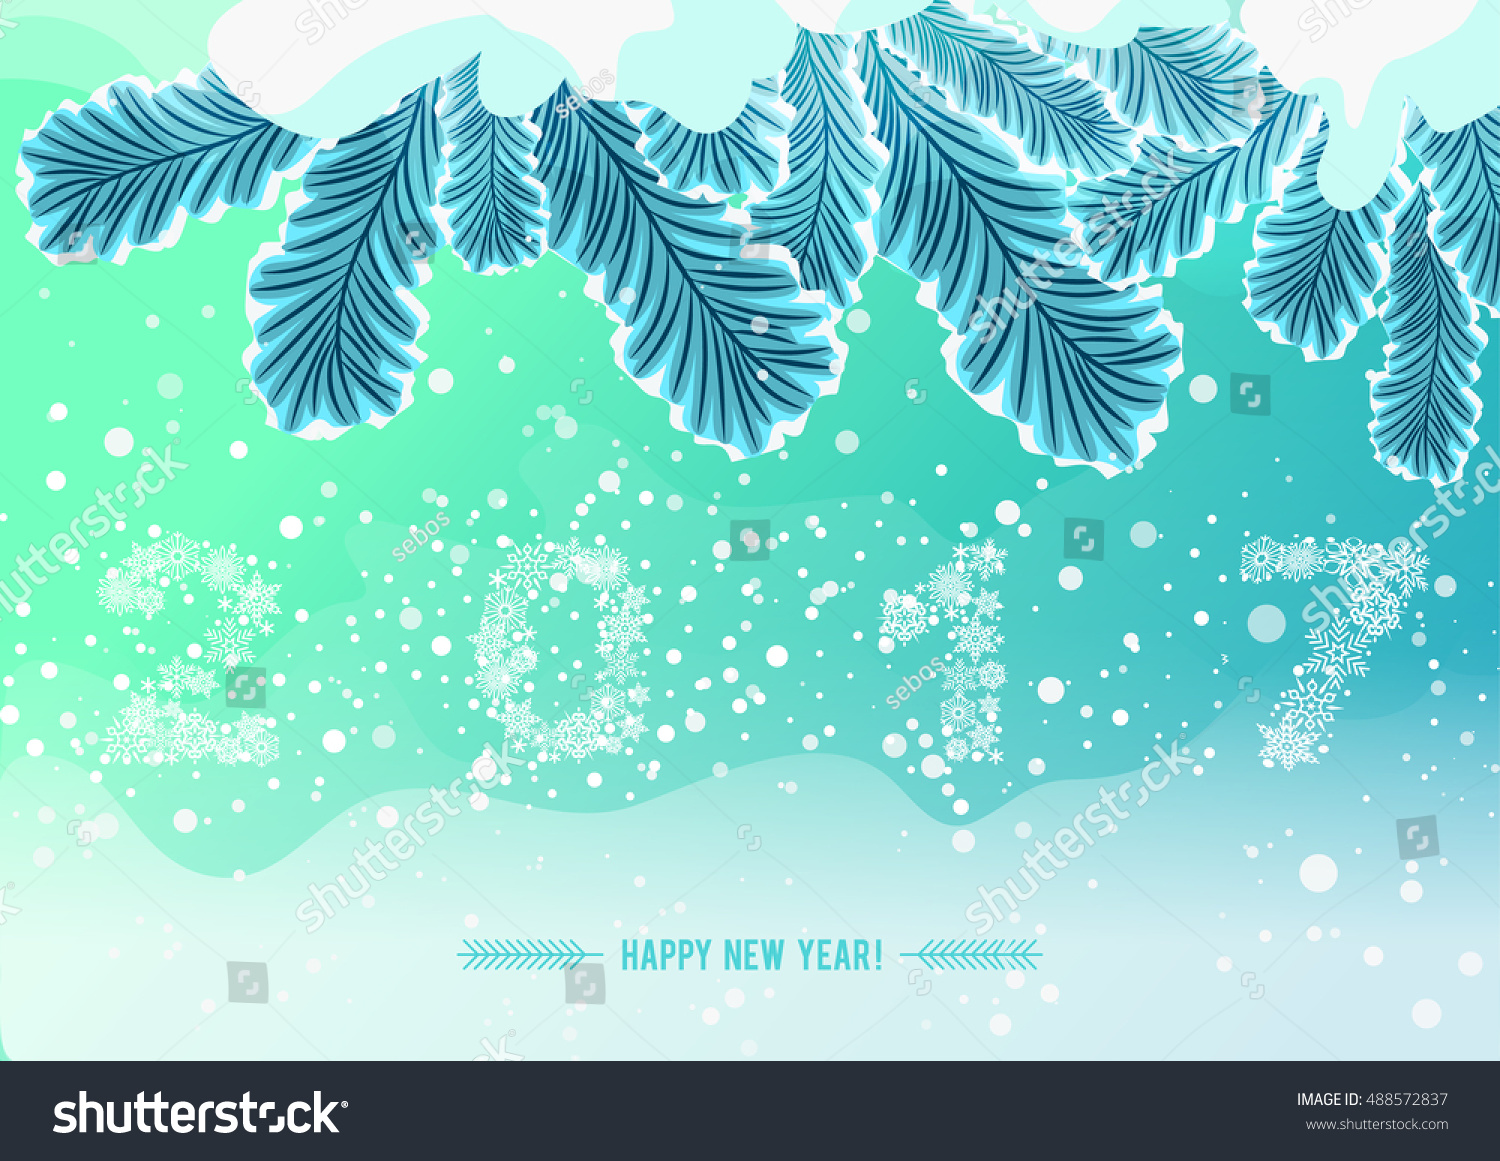 snowflake figures 2017 on snow frozen tree branch holiday illustration for happy new year